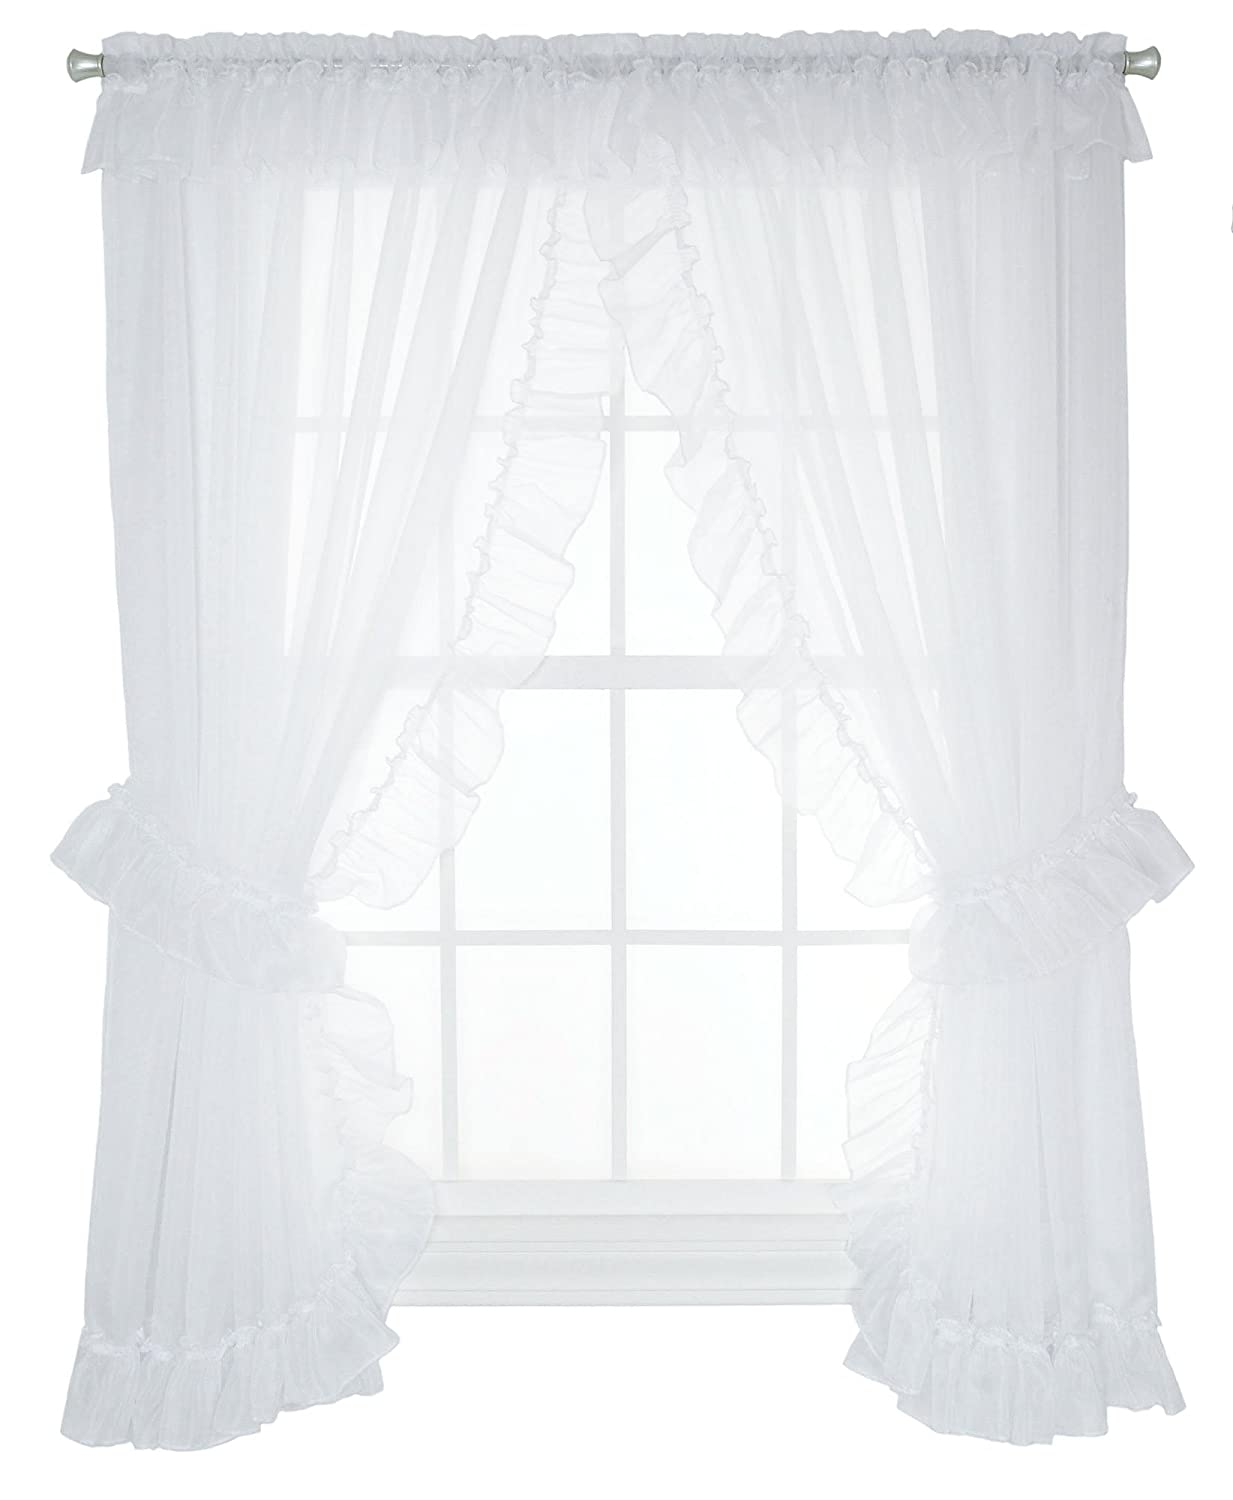 latte blackout panel decor dcdirect room darkening product dcd polyester x for curtains coffee transparent inch home themed curt window drape